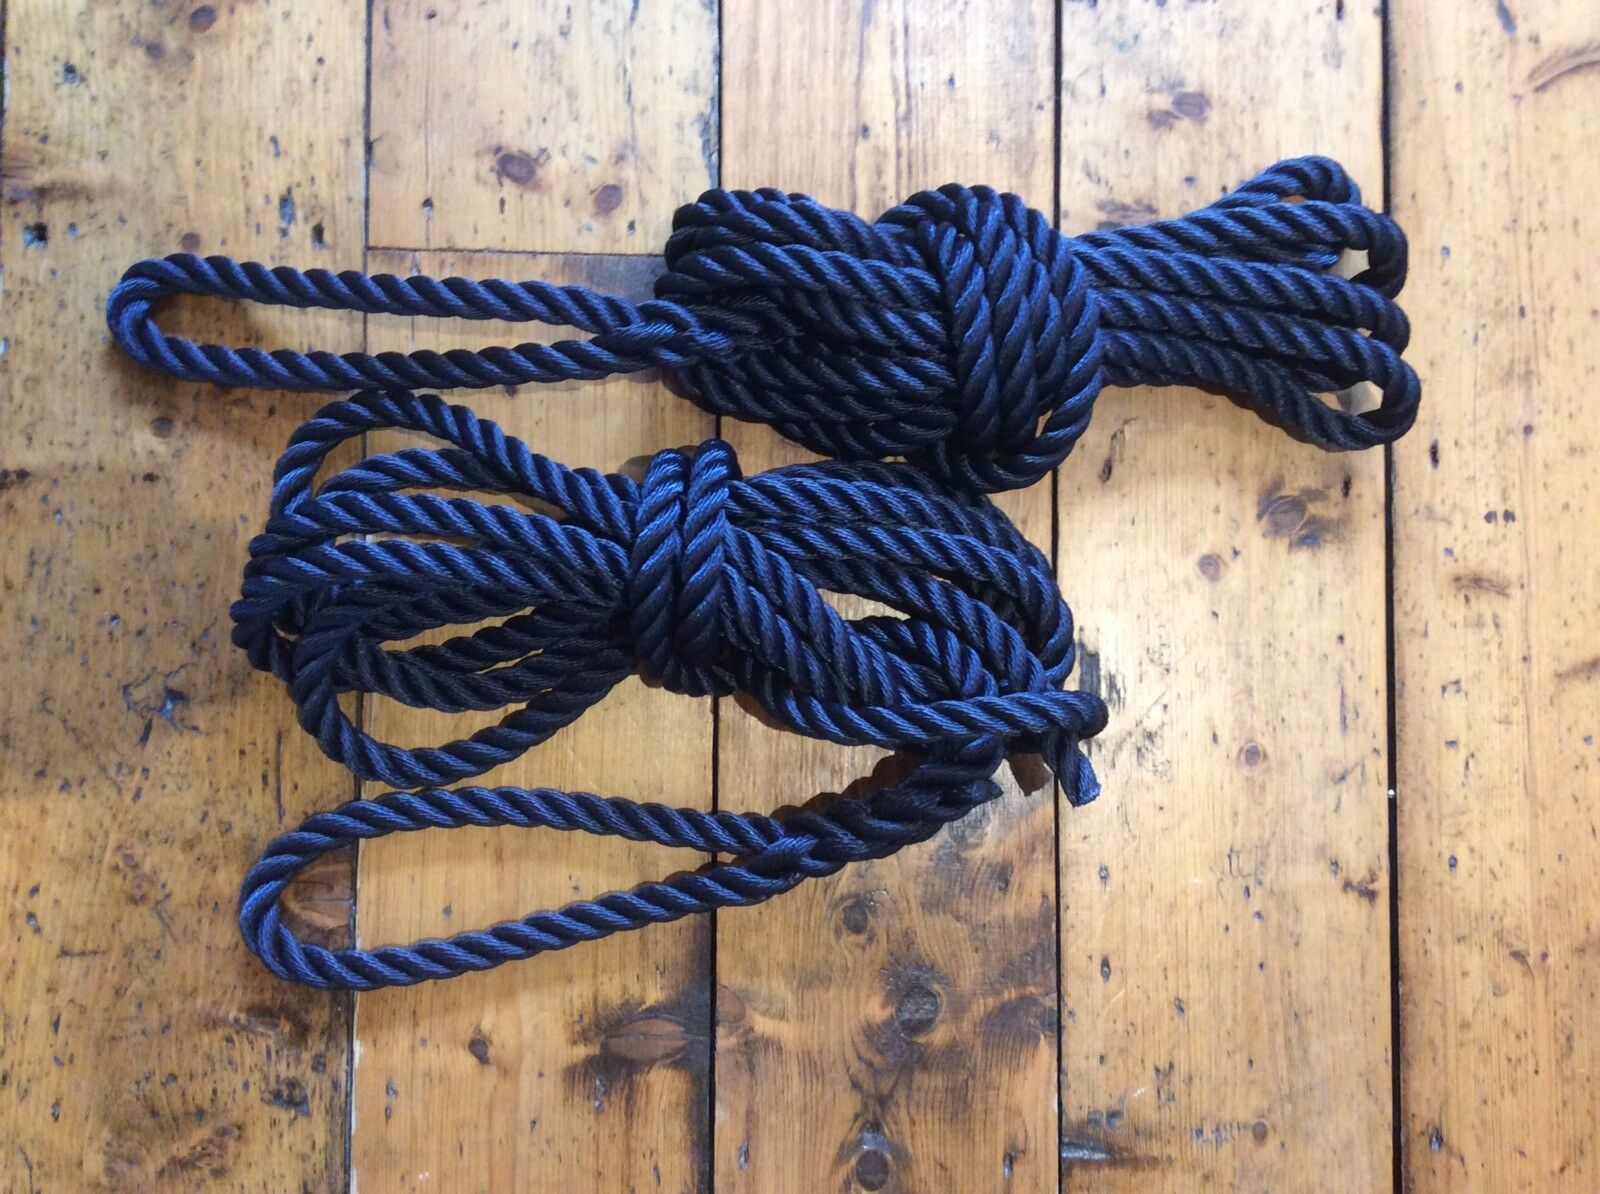 Mooring lines x 1 Pair 16mm 3 Strand Polyester Rope - Navy bluee - NEW